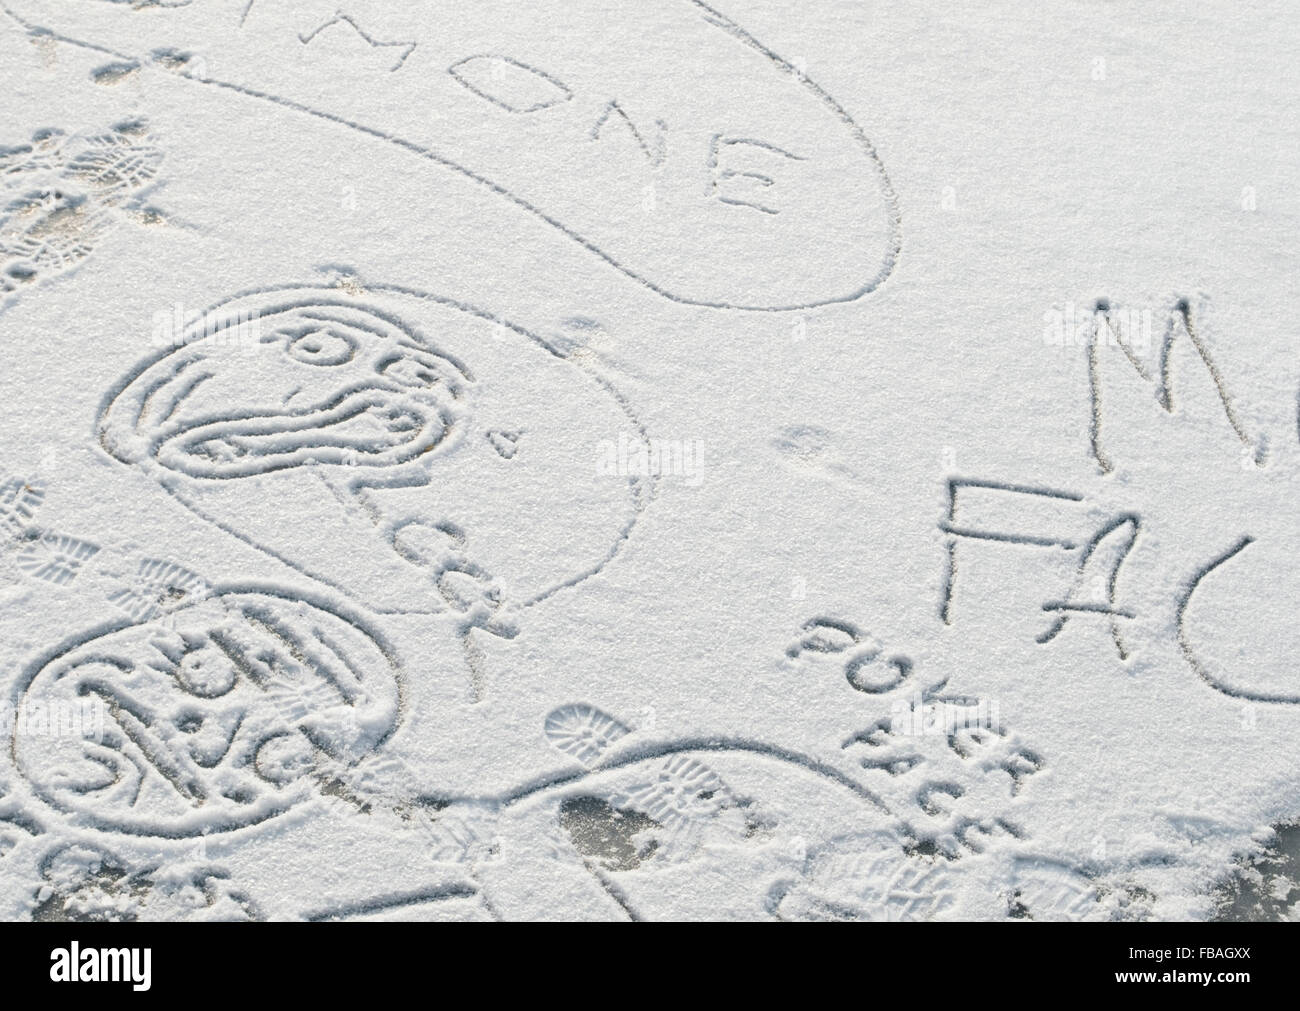 writings and drawings on the snow - Stock Image